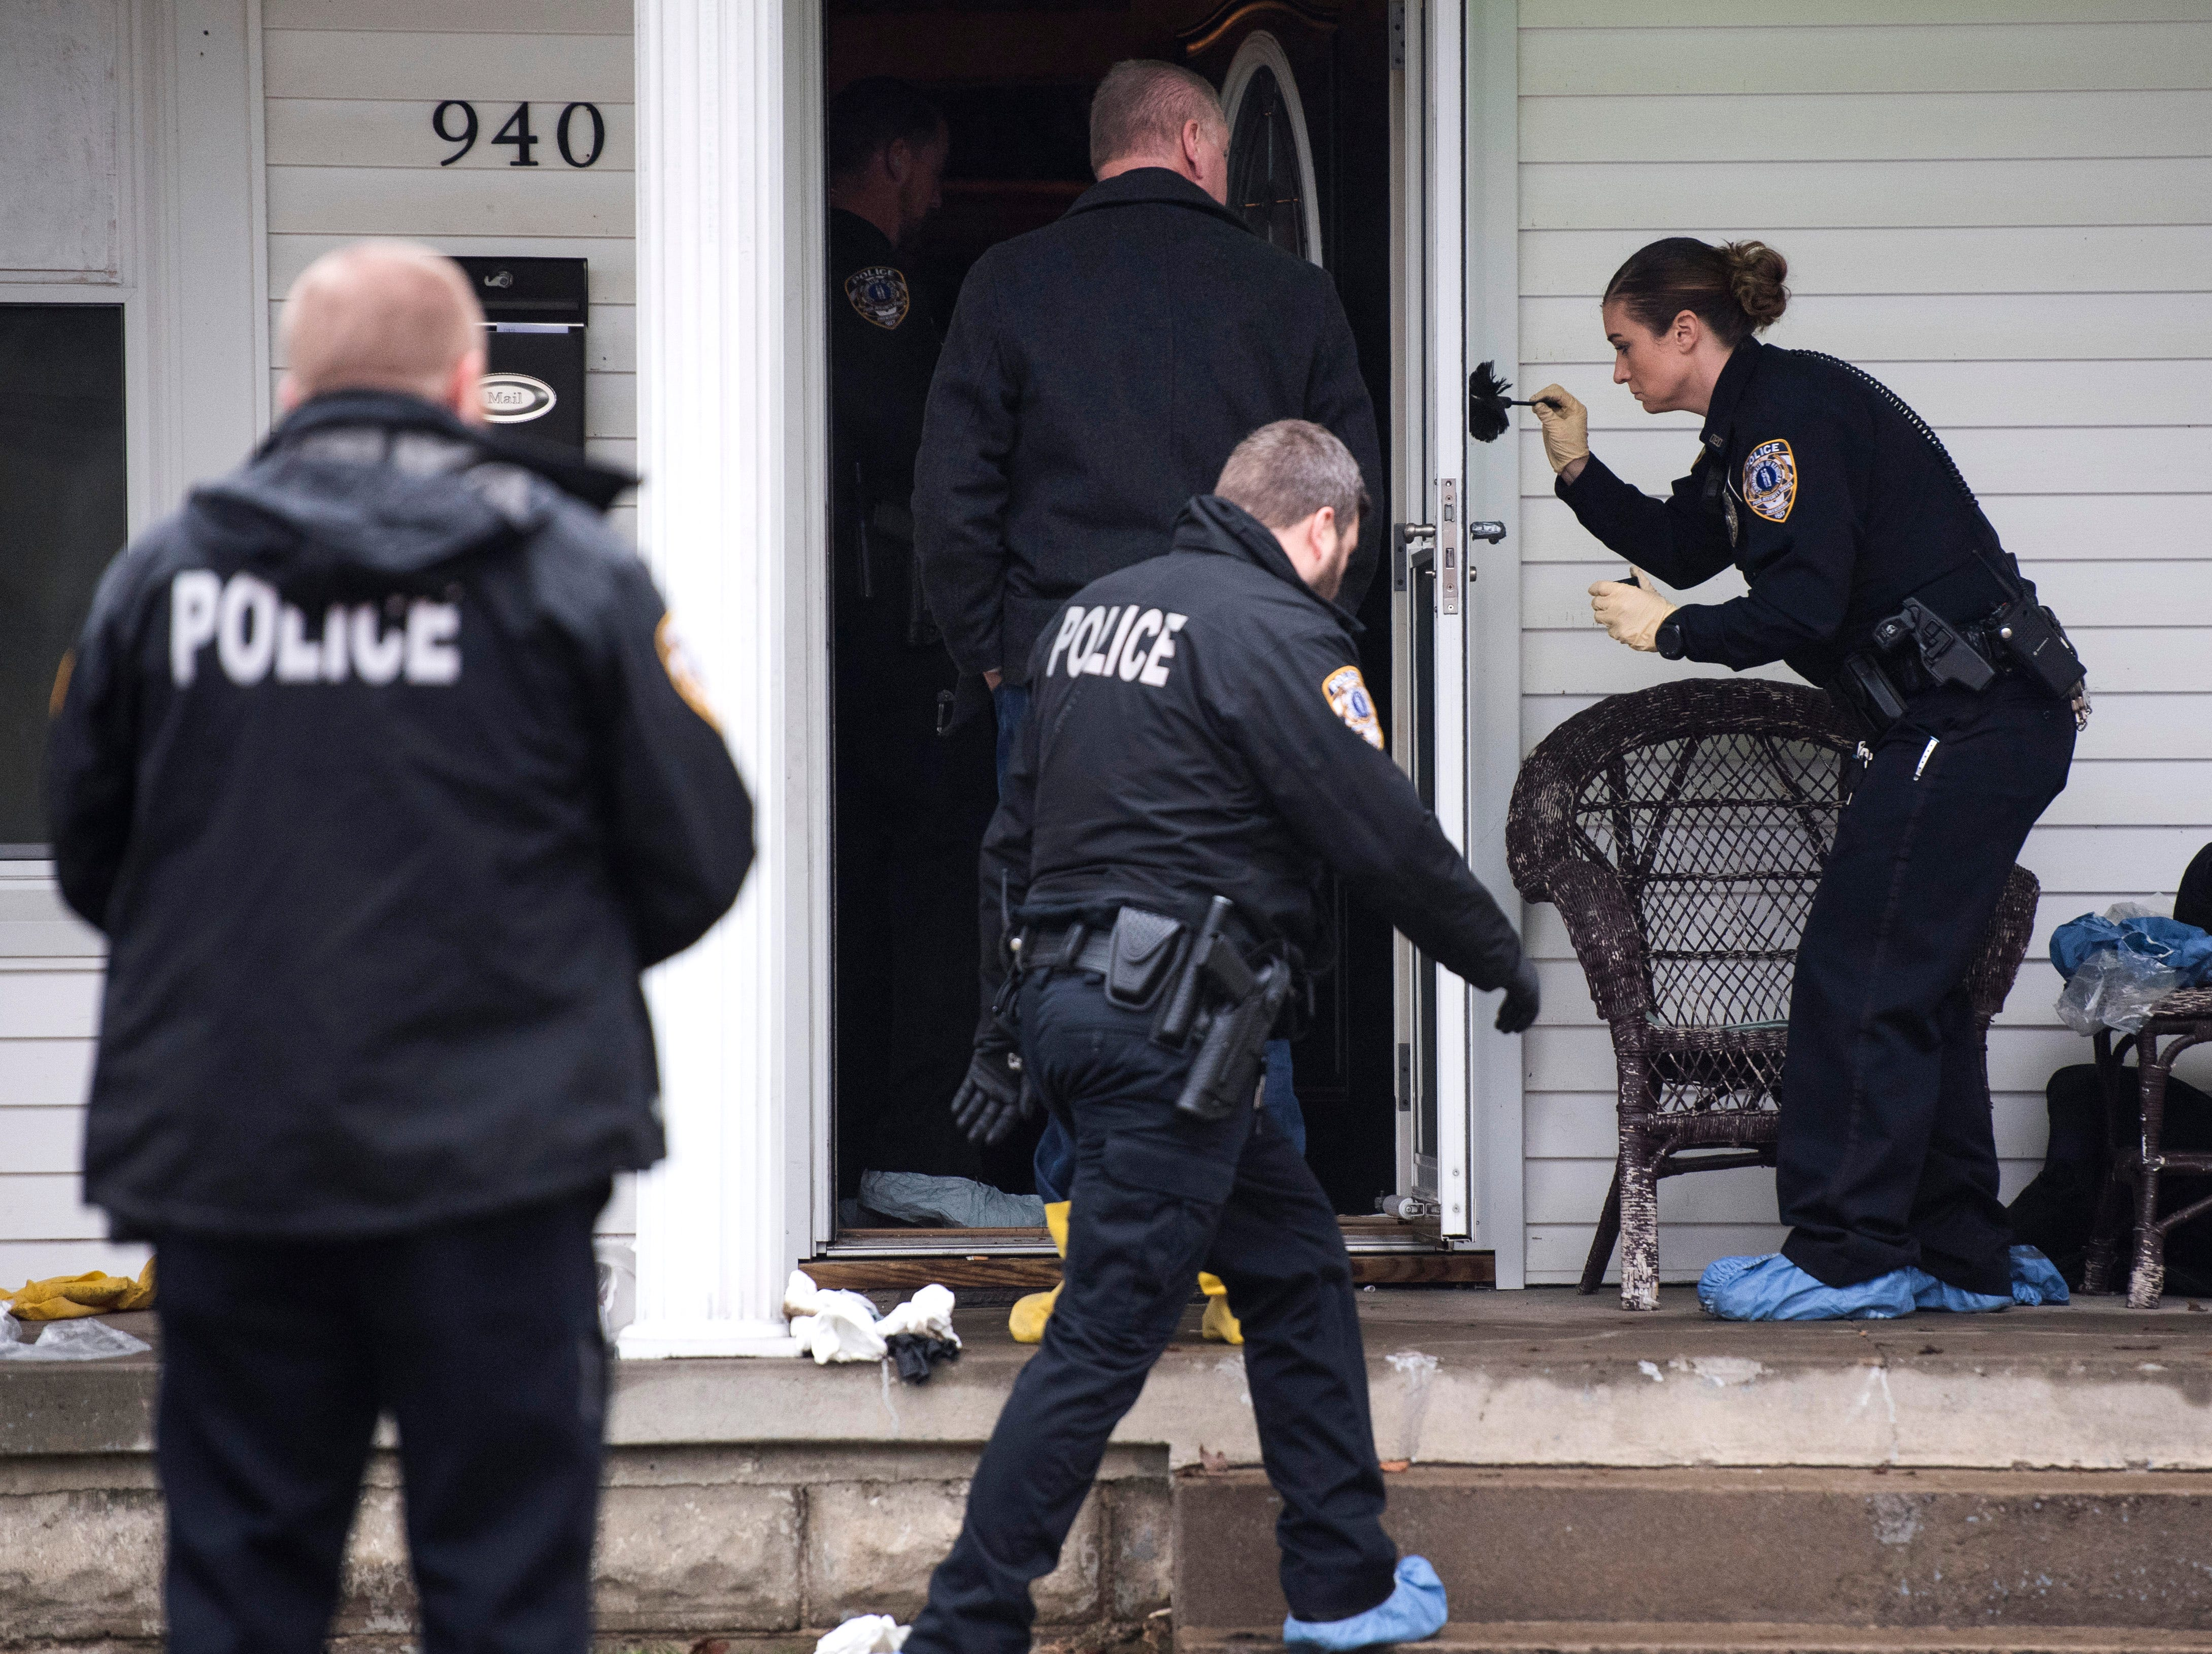 OPD officer Jennifer Haynes, far right, dust for finger prints on the outside of a screen door at 940 Audubon Avenue in Owensboro, Ky.  as police investigate a fatal shooting with at least four victims, Thursday Jan. 17, 2019.